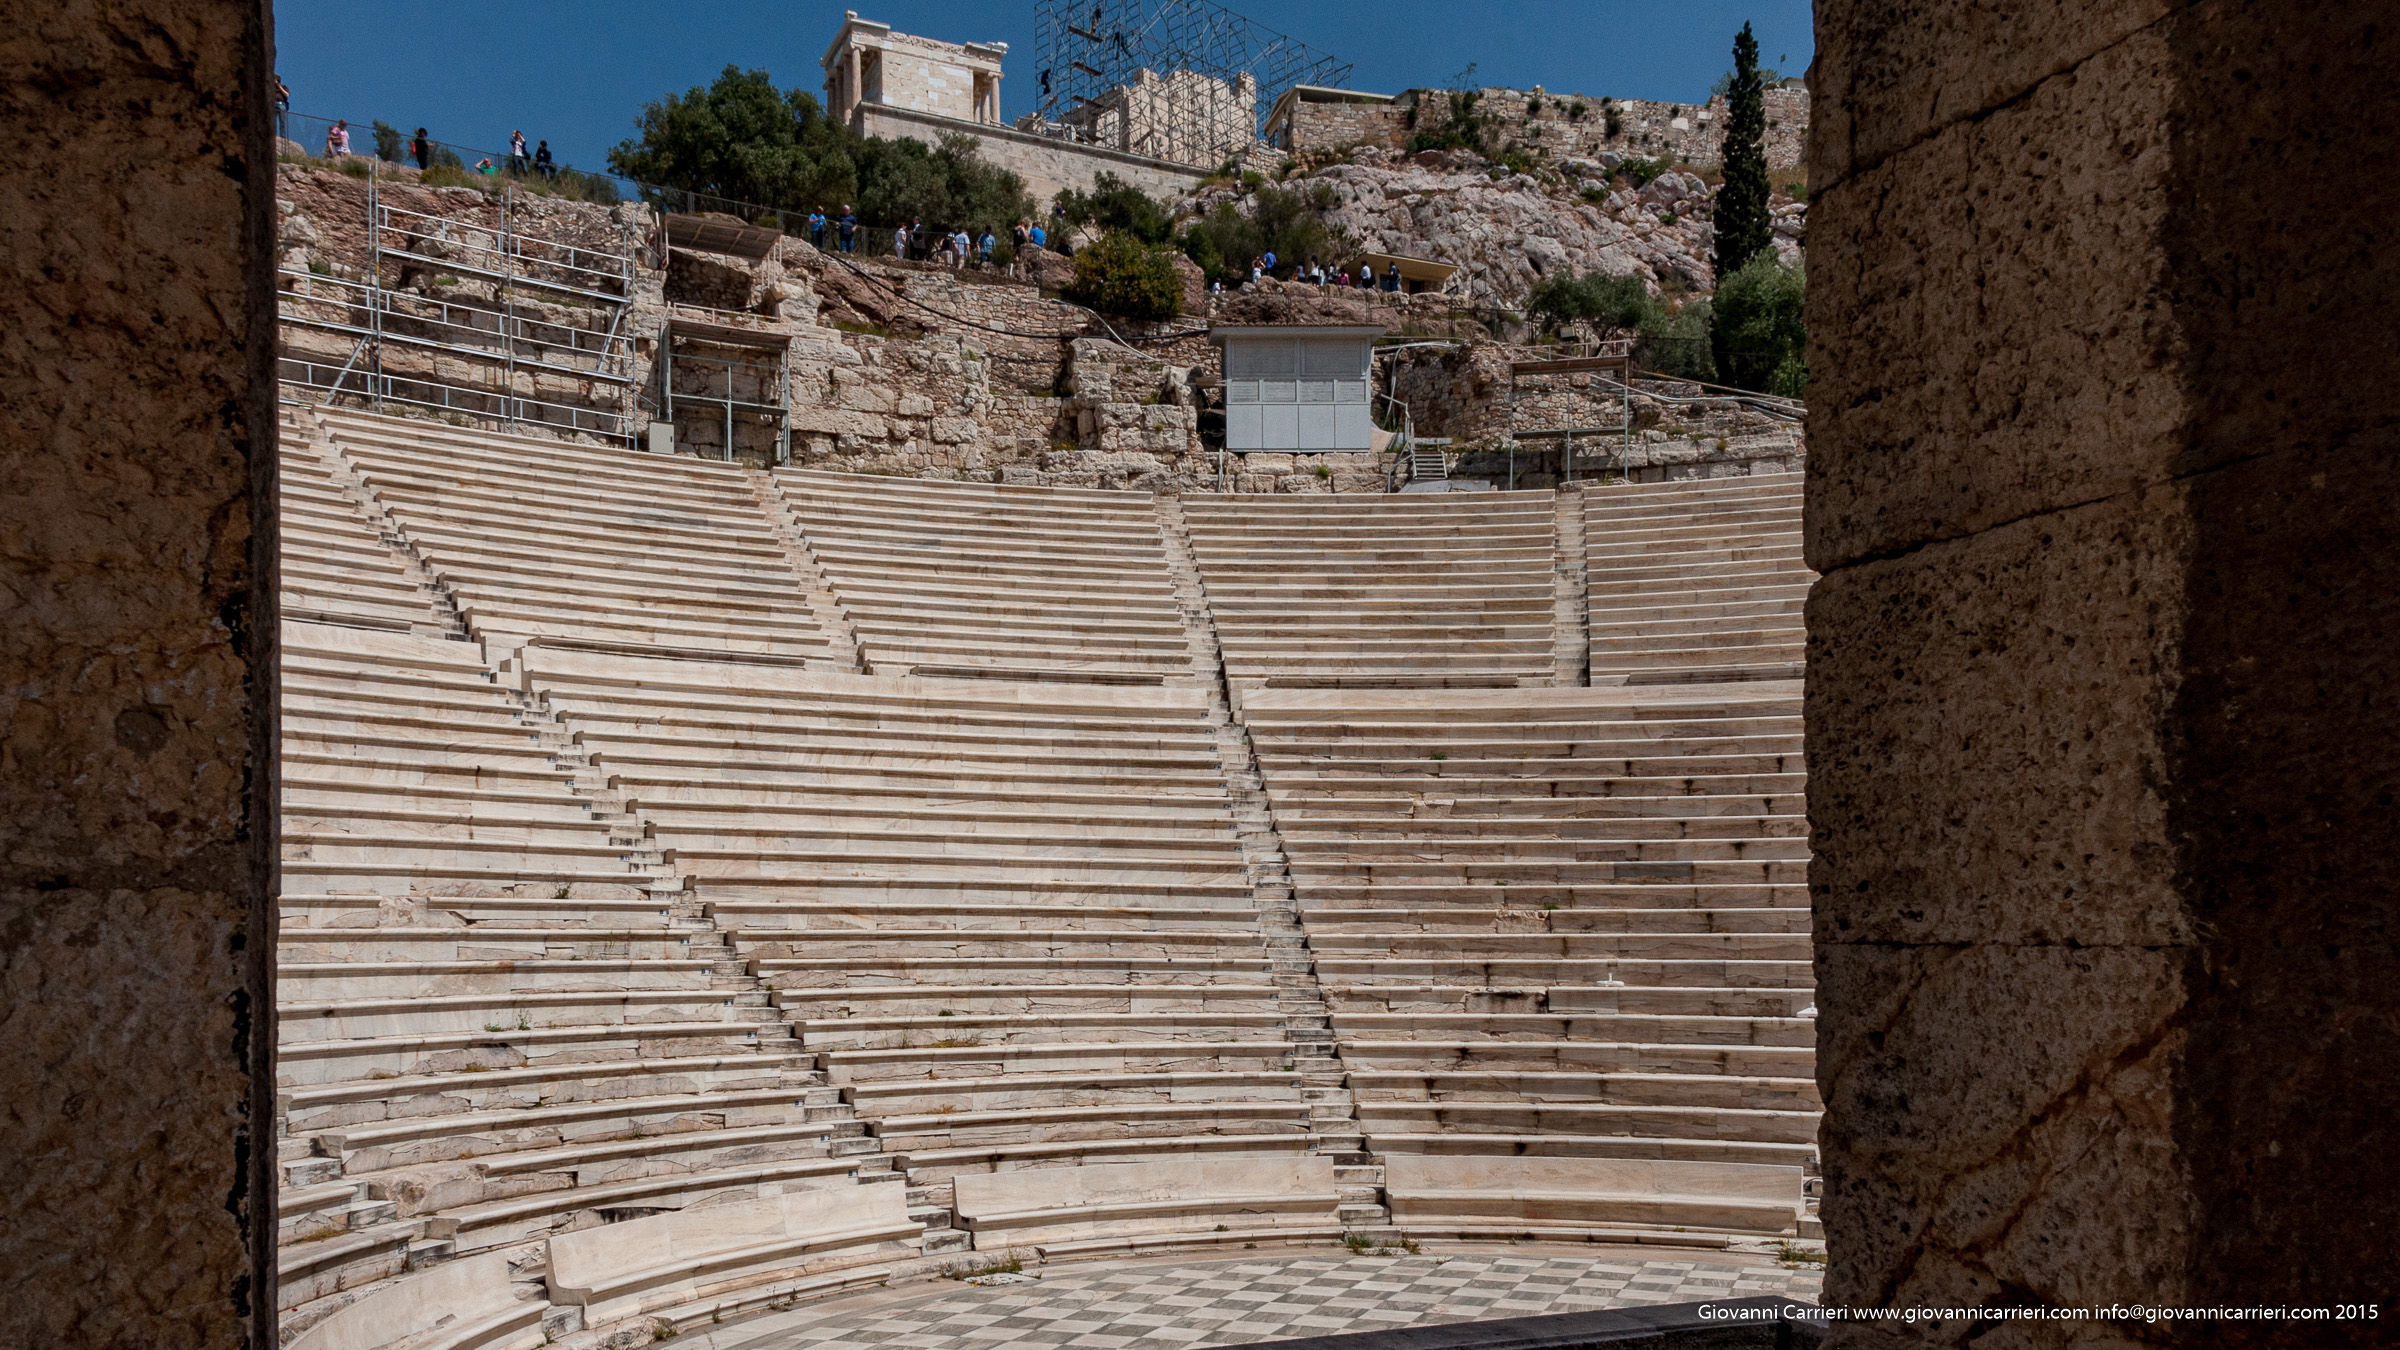 External view of the theater Odeon of Herodes Atticus Athens